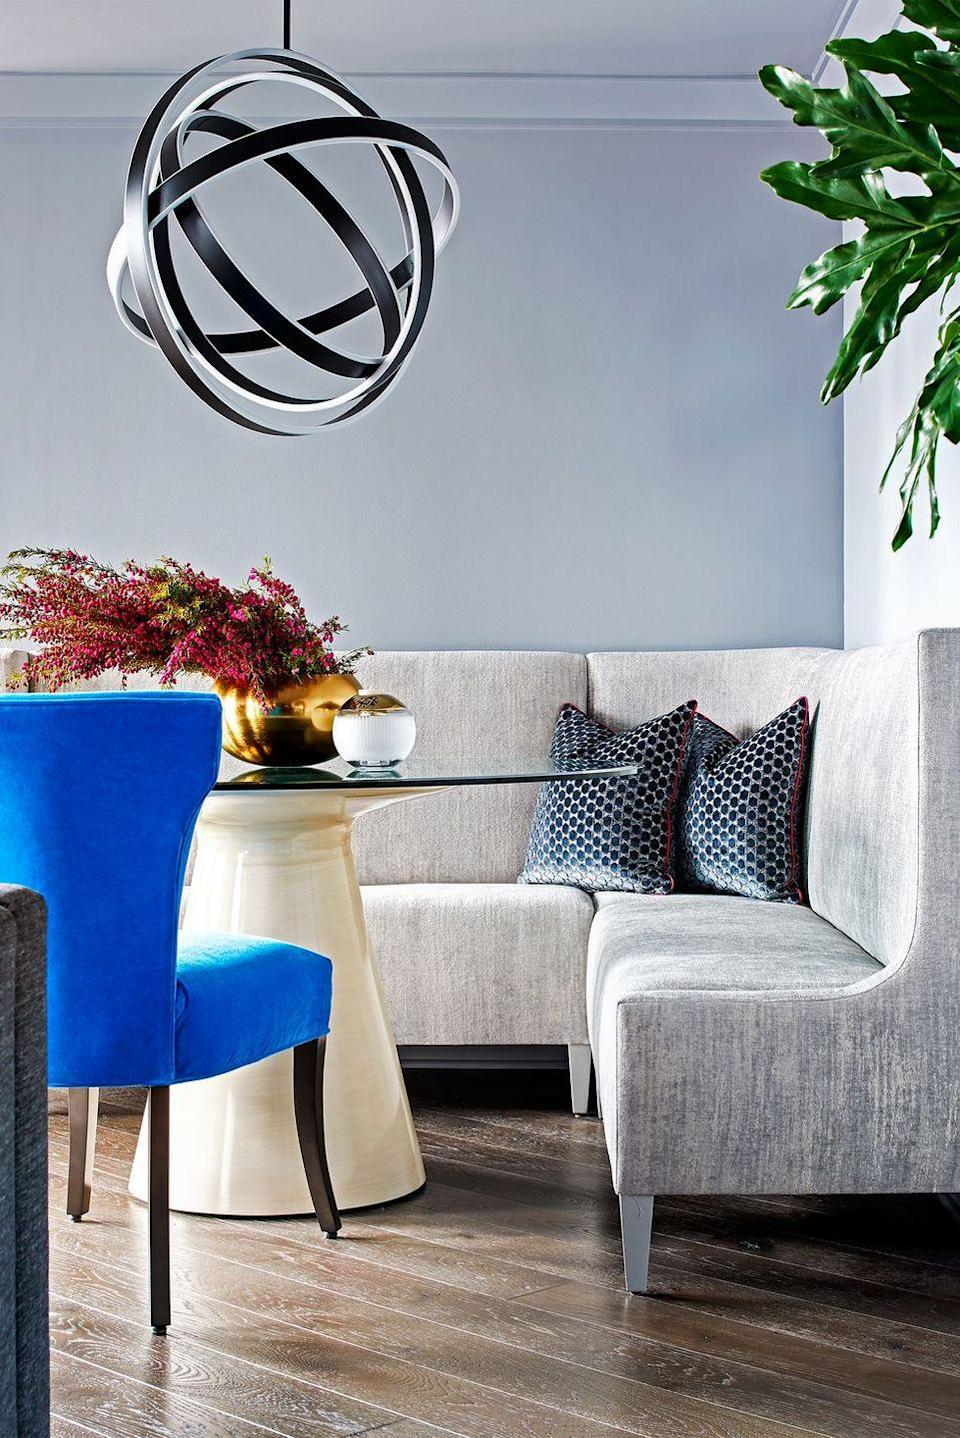 """<p>Interior designer <a href=""""https://www.shakoorinc.com/"""" rel=""""nofollow noopener"""" target=""""_blank"""" data-ylk=""""slk:Erin Shakoor"""" class=""""link rapid-noclick-resp"""">Erin Shakoor</a> doubled the seating in this dining nook with a banquette. """"A banquette allows you to sit longer, more comfortably—is and with more people,"""" she tells us. Adding pillows helps set the move even further. </p>"""